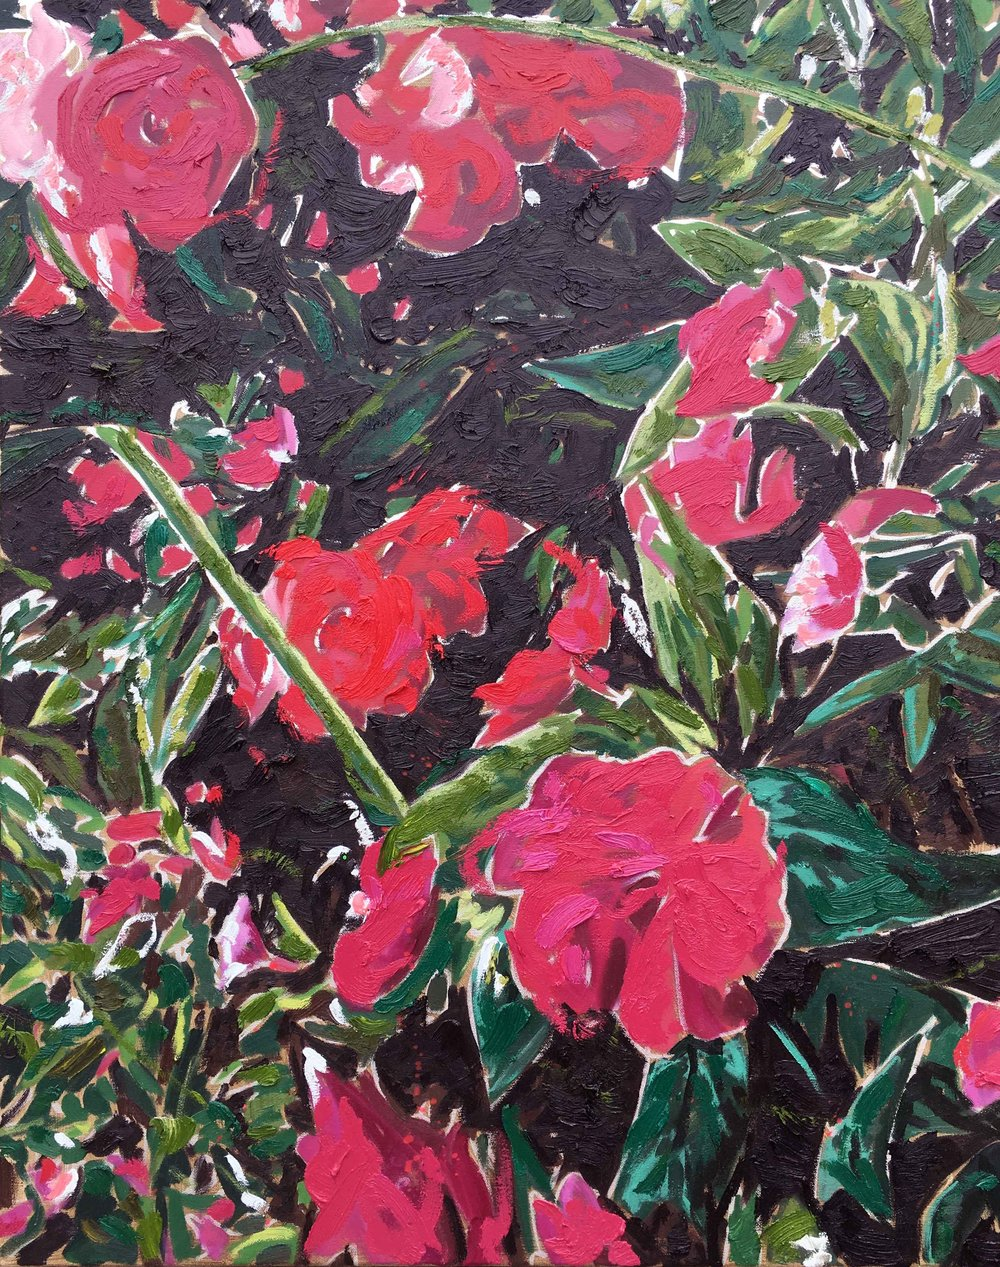 Summer Bloom, 2017, oil on canvas. 30 x 24 in.